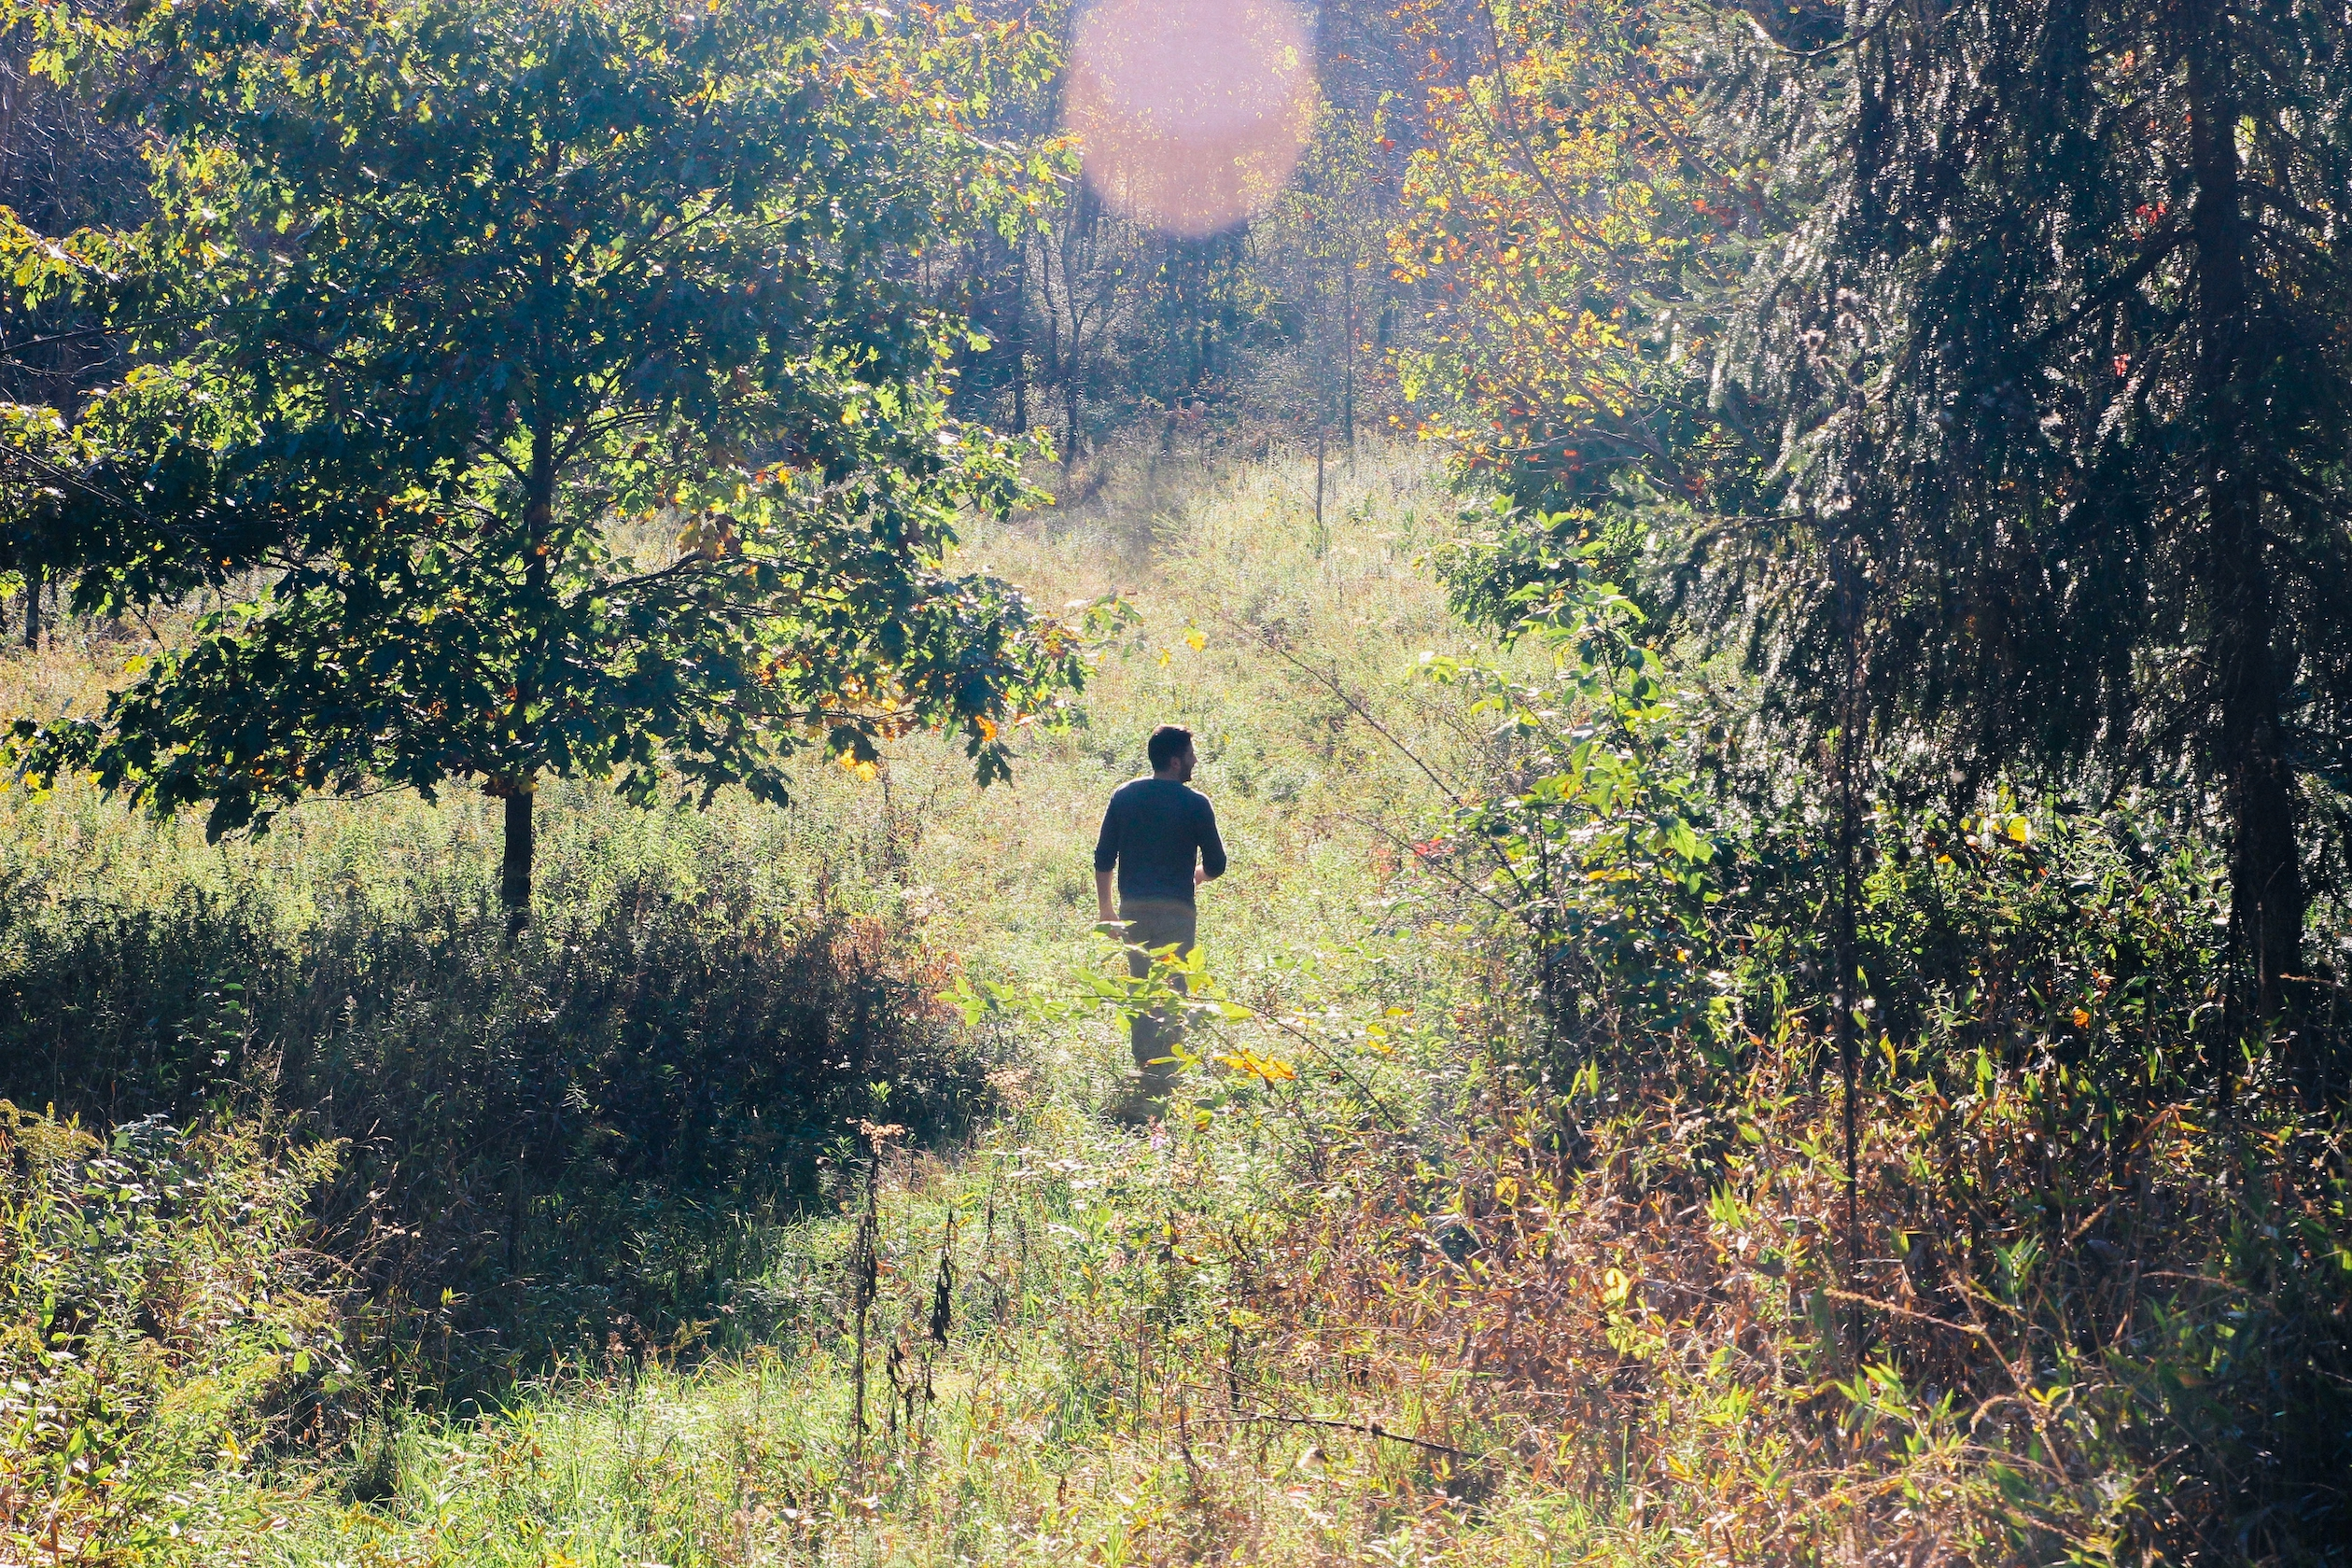 Photo of a person walking alone through a lush forest.